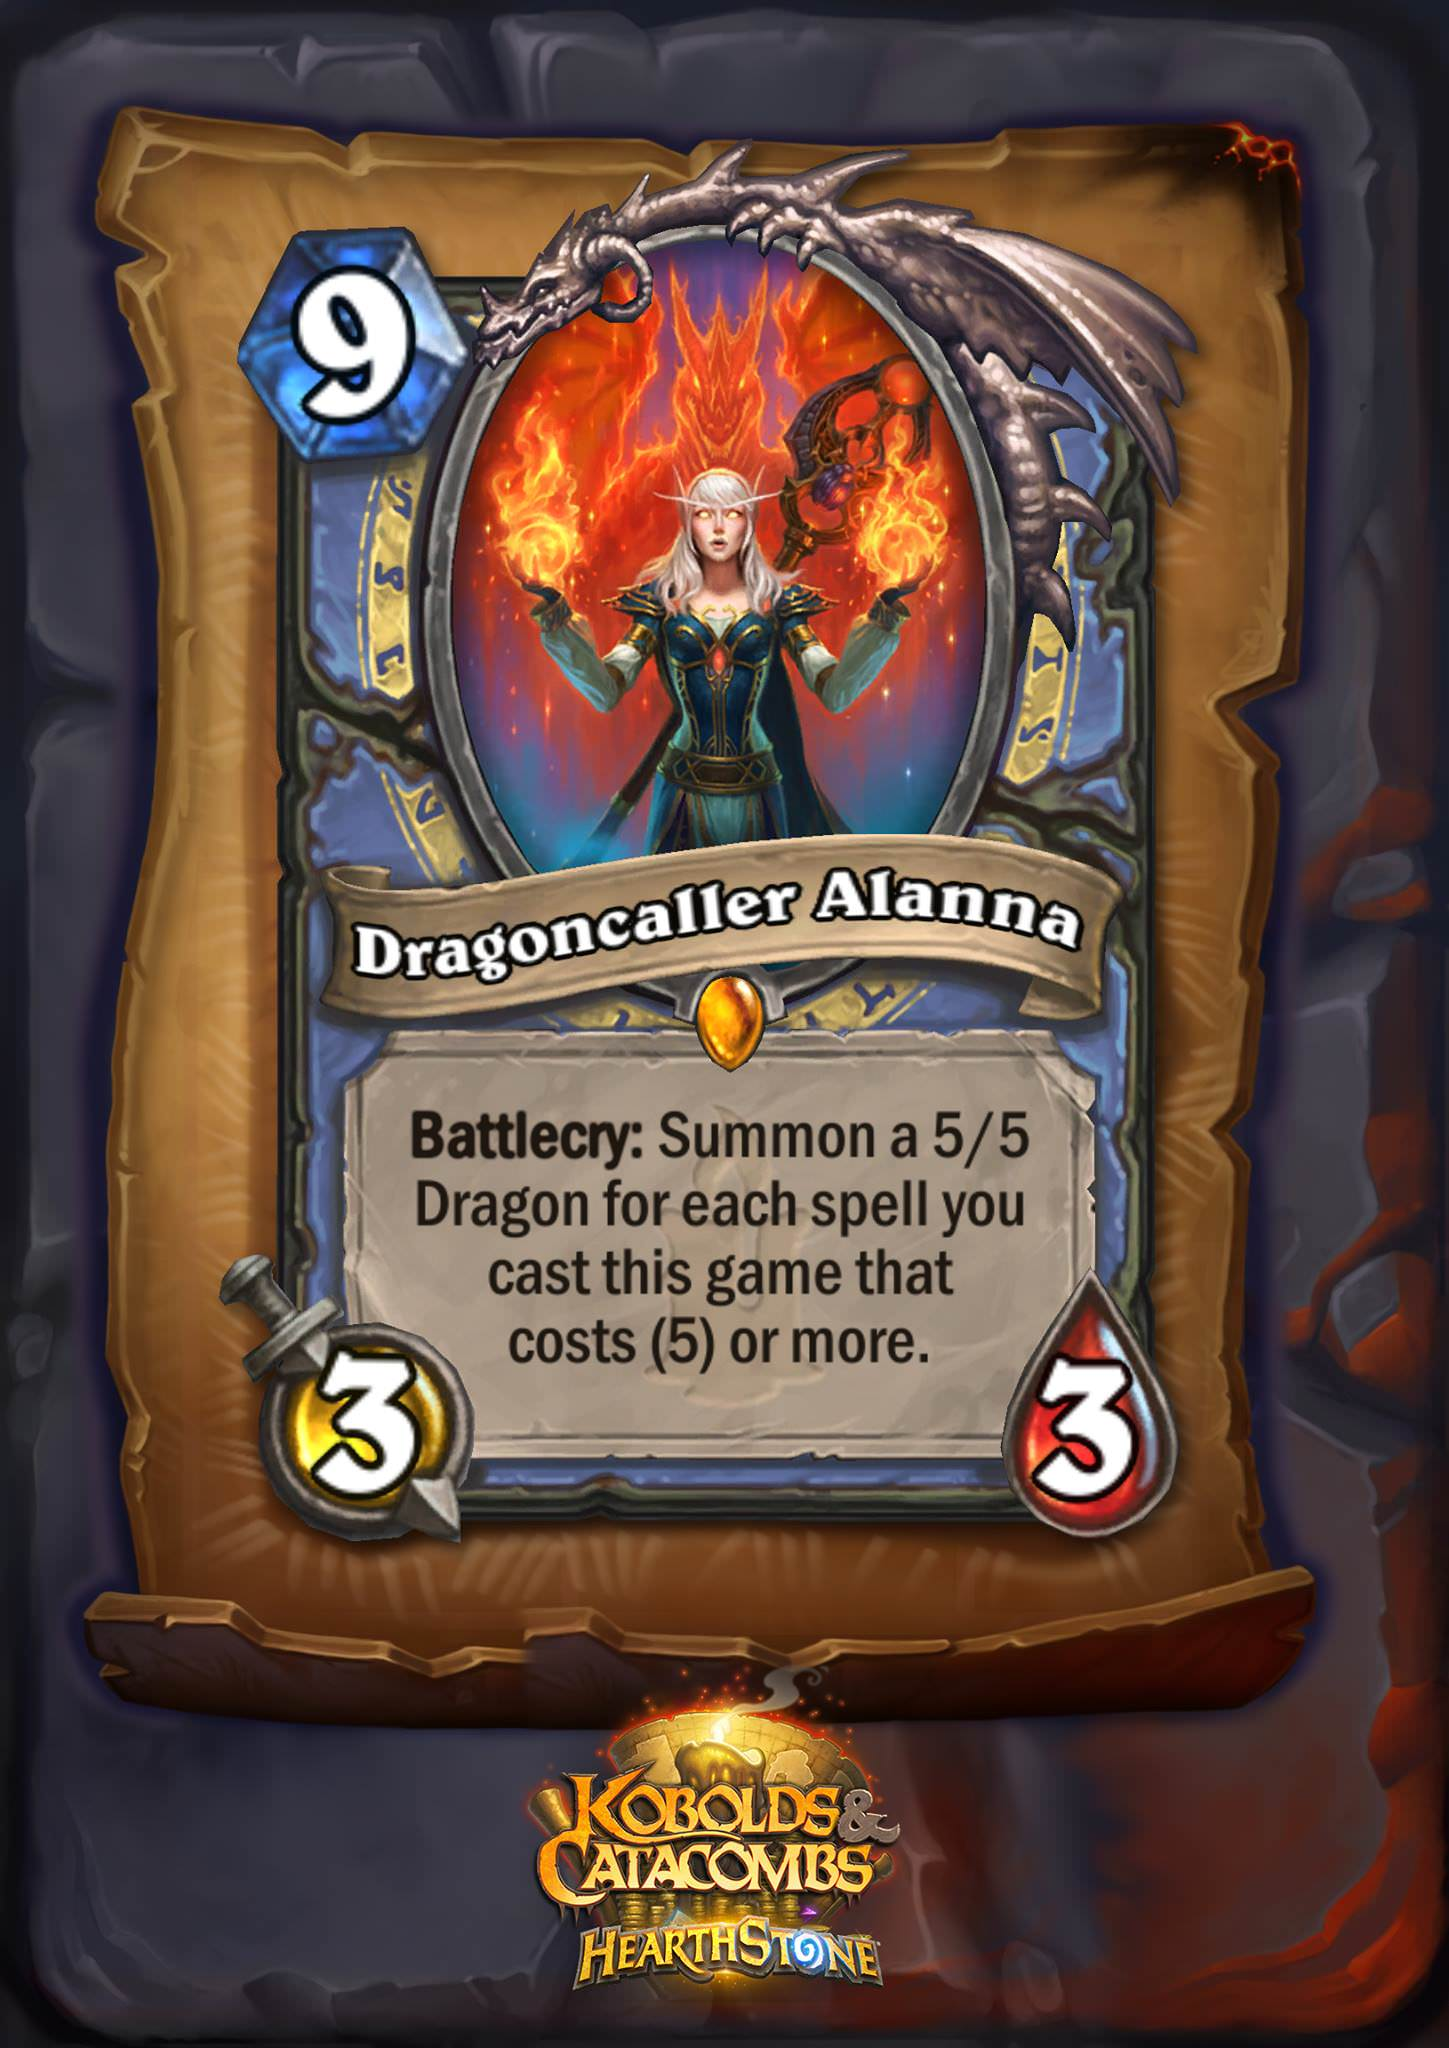 "Dragoncaller Alanna is a nine mana 3/3 minion. The card text reads: ""Battlecry: Summon a 5/5 Dragon for each spell you cast this game that costs (5) or more."""